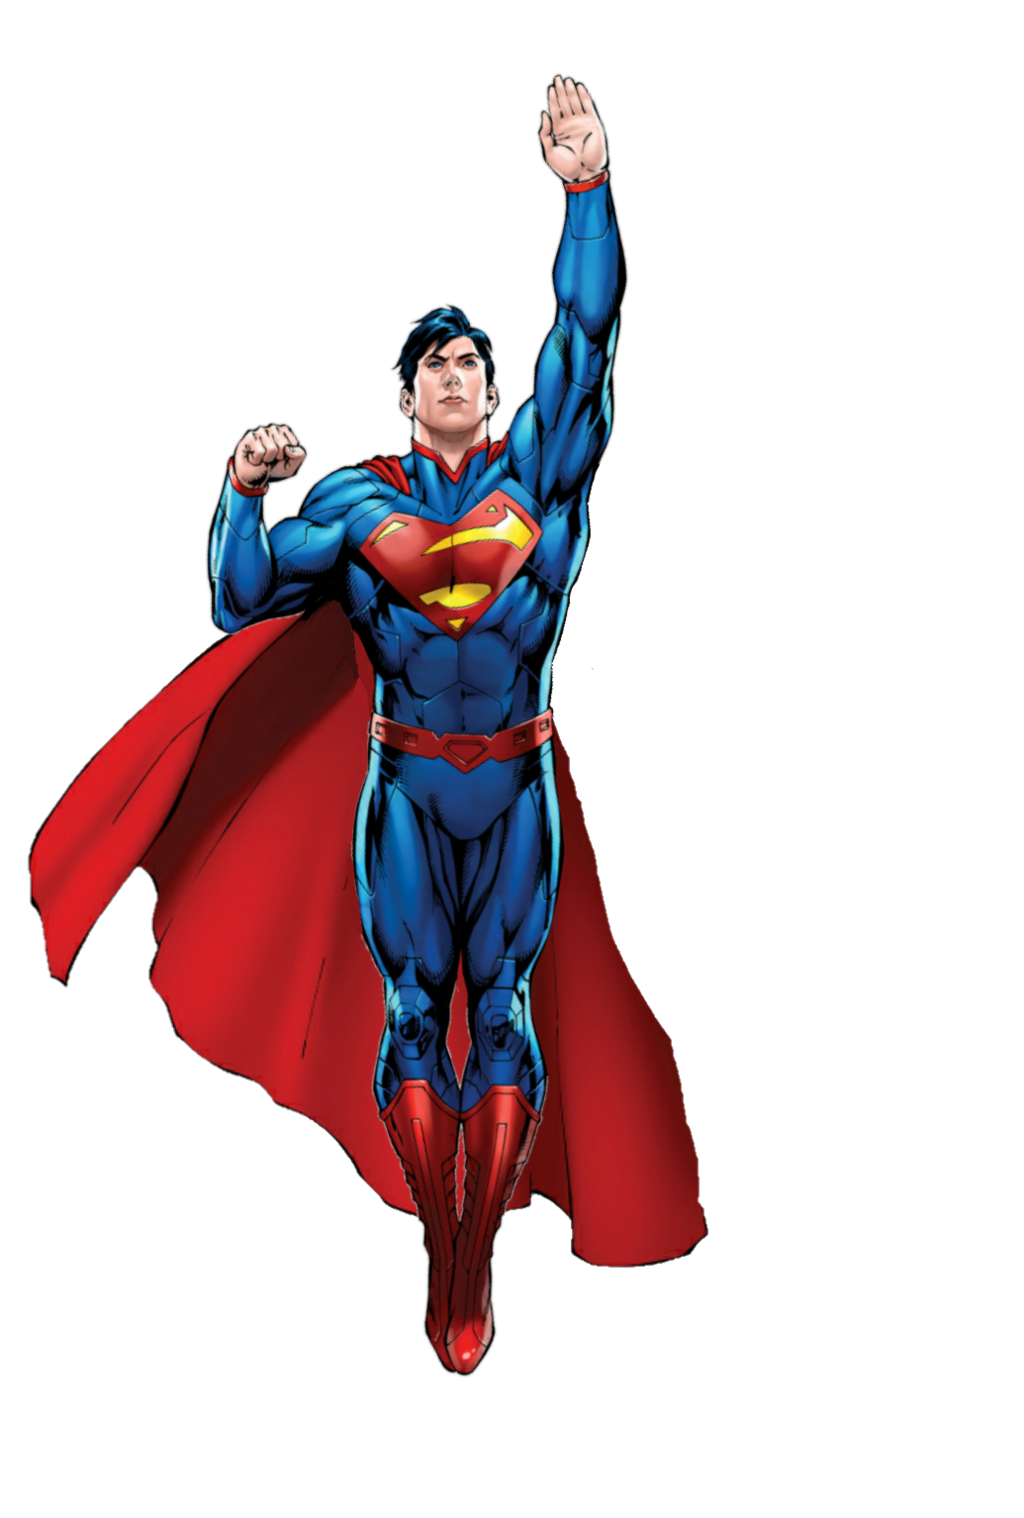 Transparent comic superman